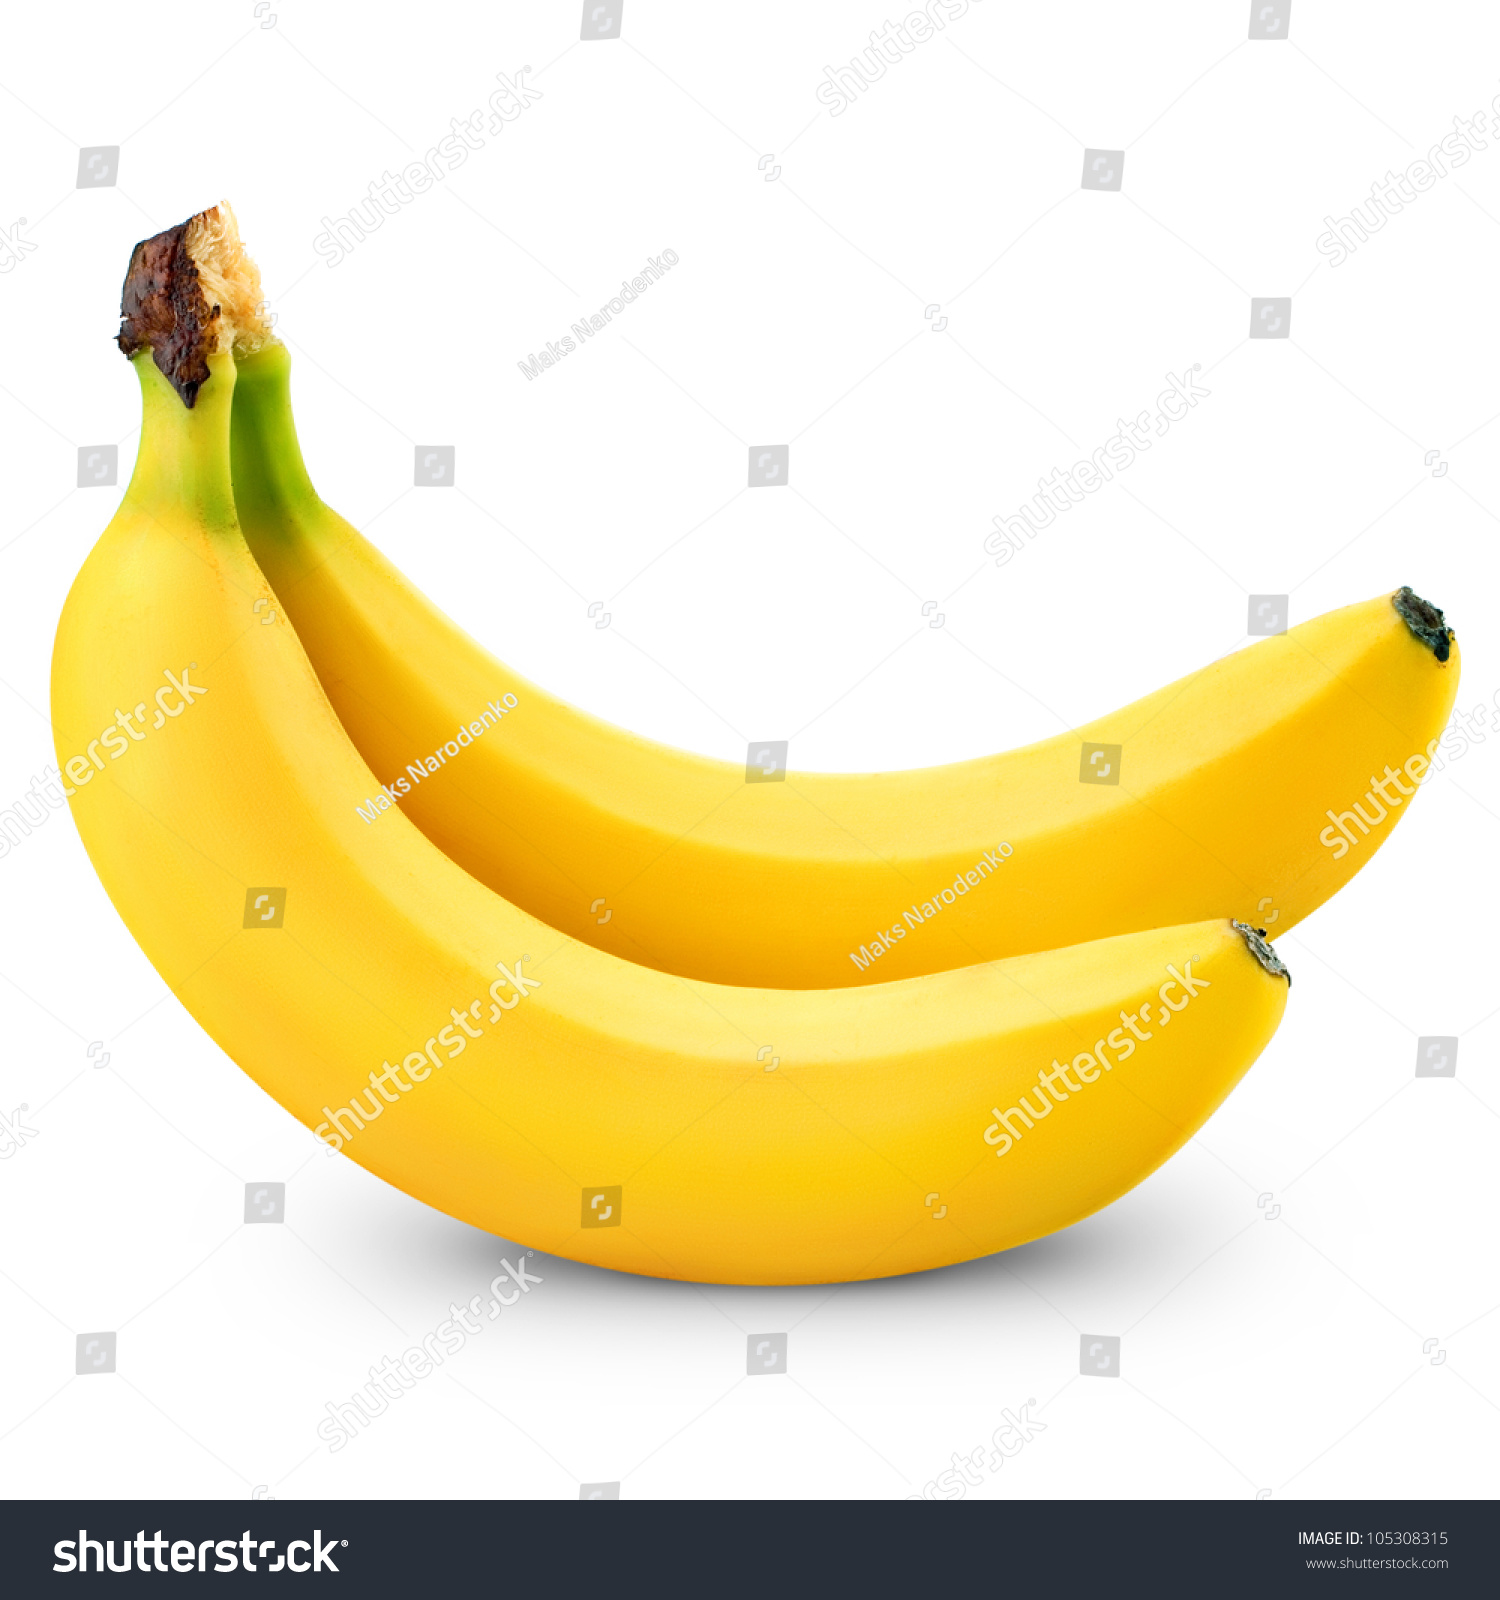 a cheerful mister banana Banana with an edible skin is one of only 1% grown in japan and it's created using an ice age dna method (but only 10 of the fruits go on sale every week at a whopping £420 each.